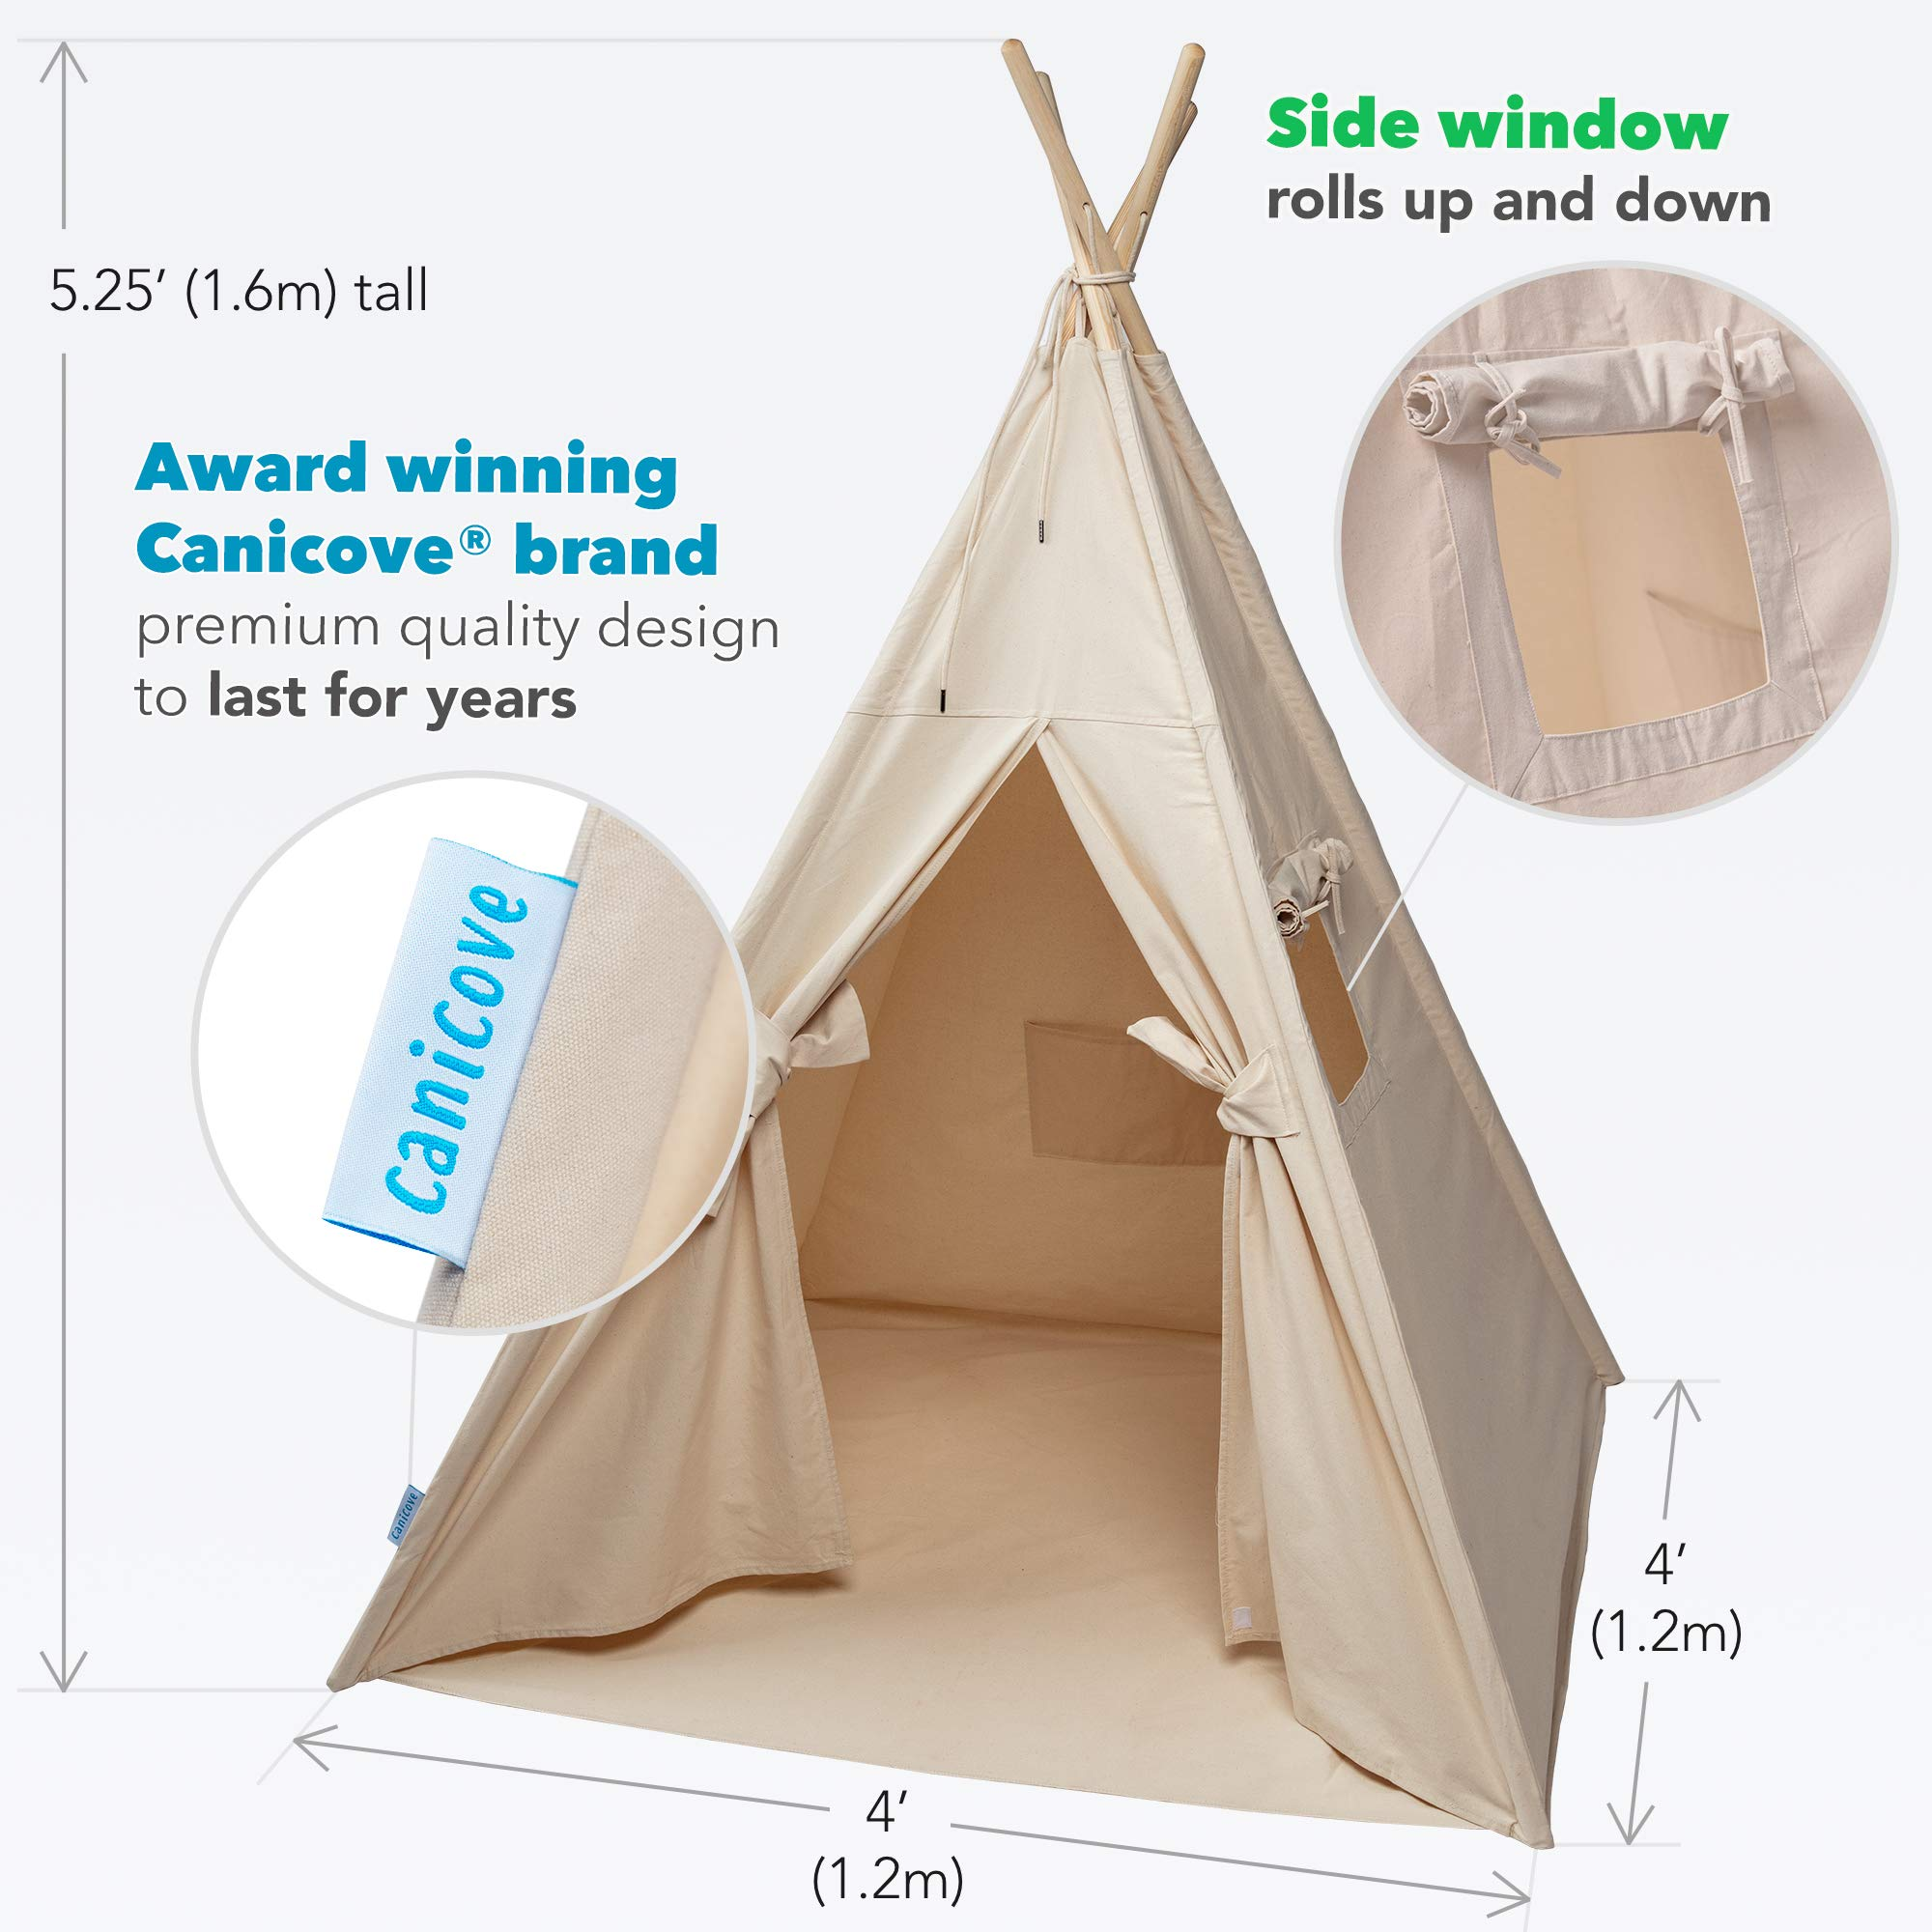 Canicove Teepee Tent for Kids - Award Winning 100% Cotton Play Tent - Large Indoor/Outdoor Tipi for Boys & Girls + Free Fun Flags! by Canicove (Image #6)